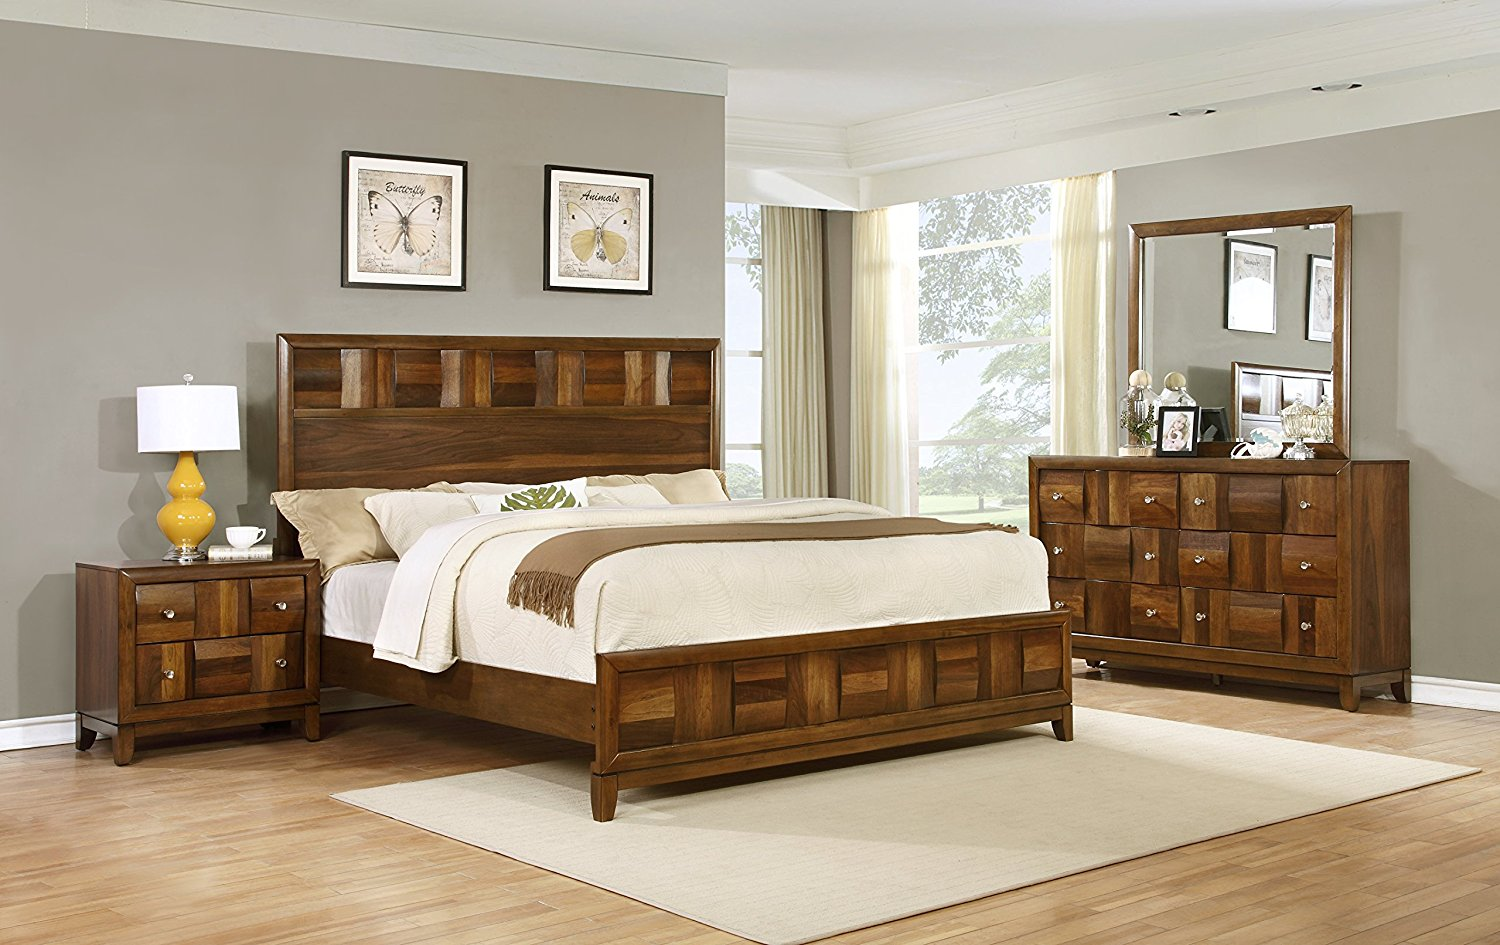 Awesome Solid Wood Bedroom Sets